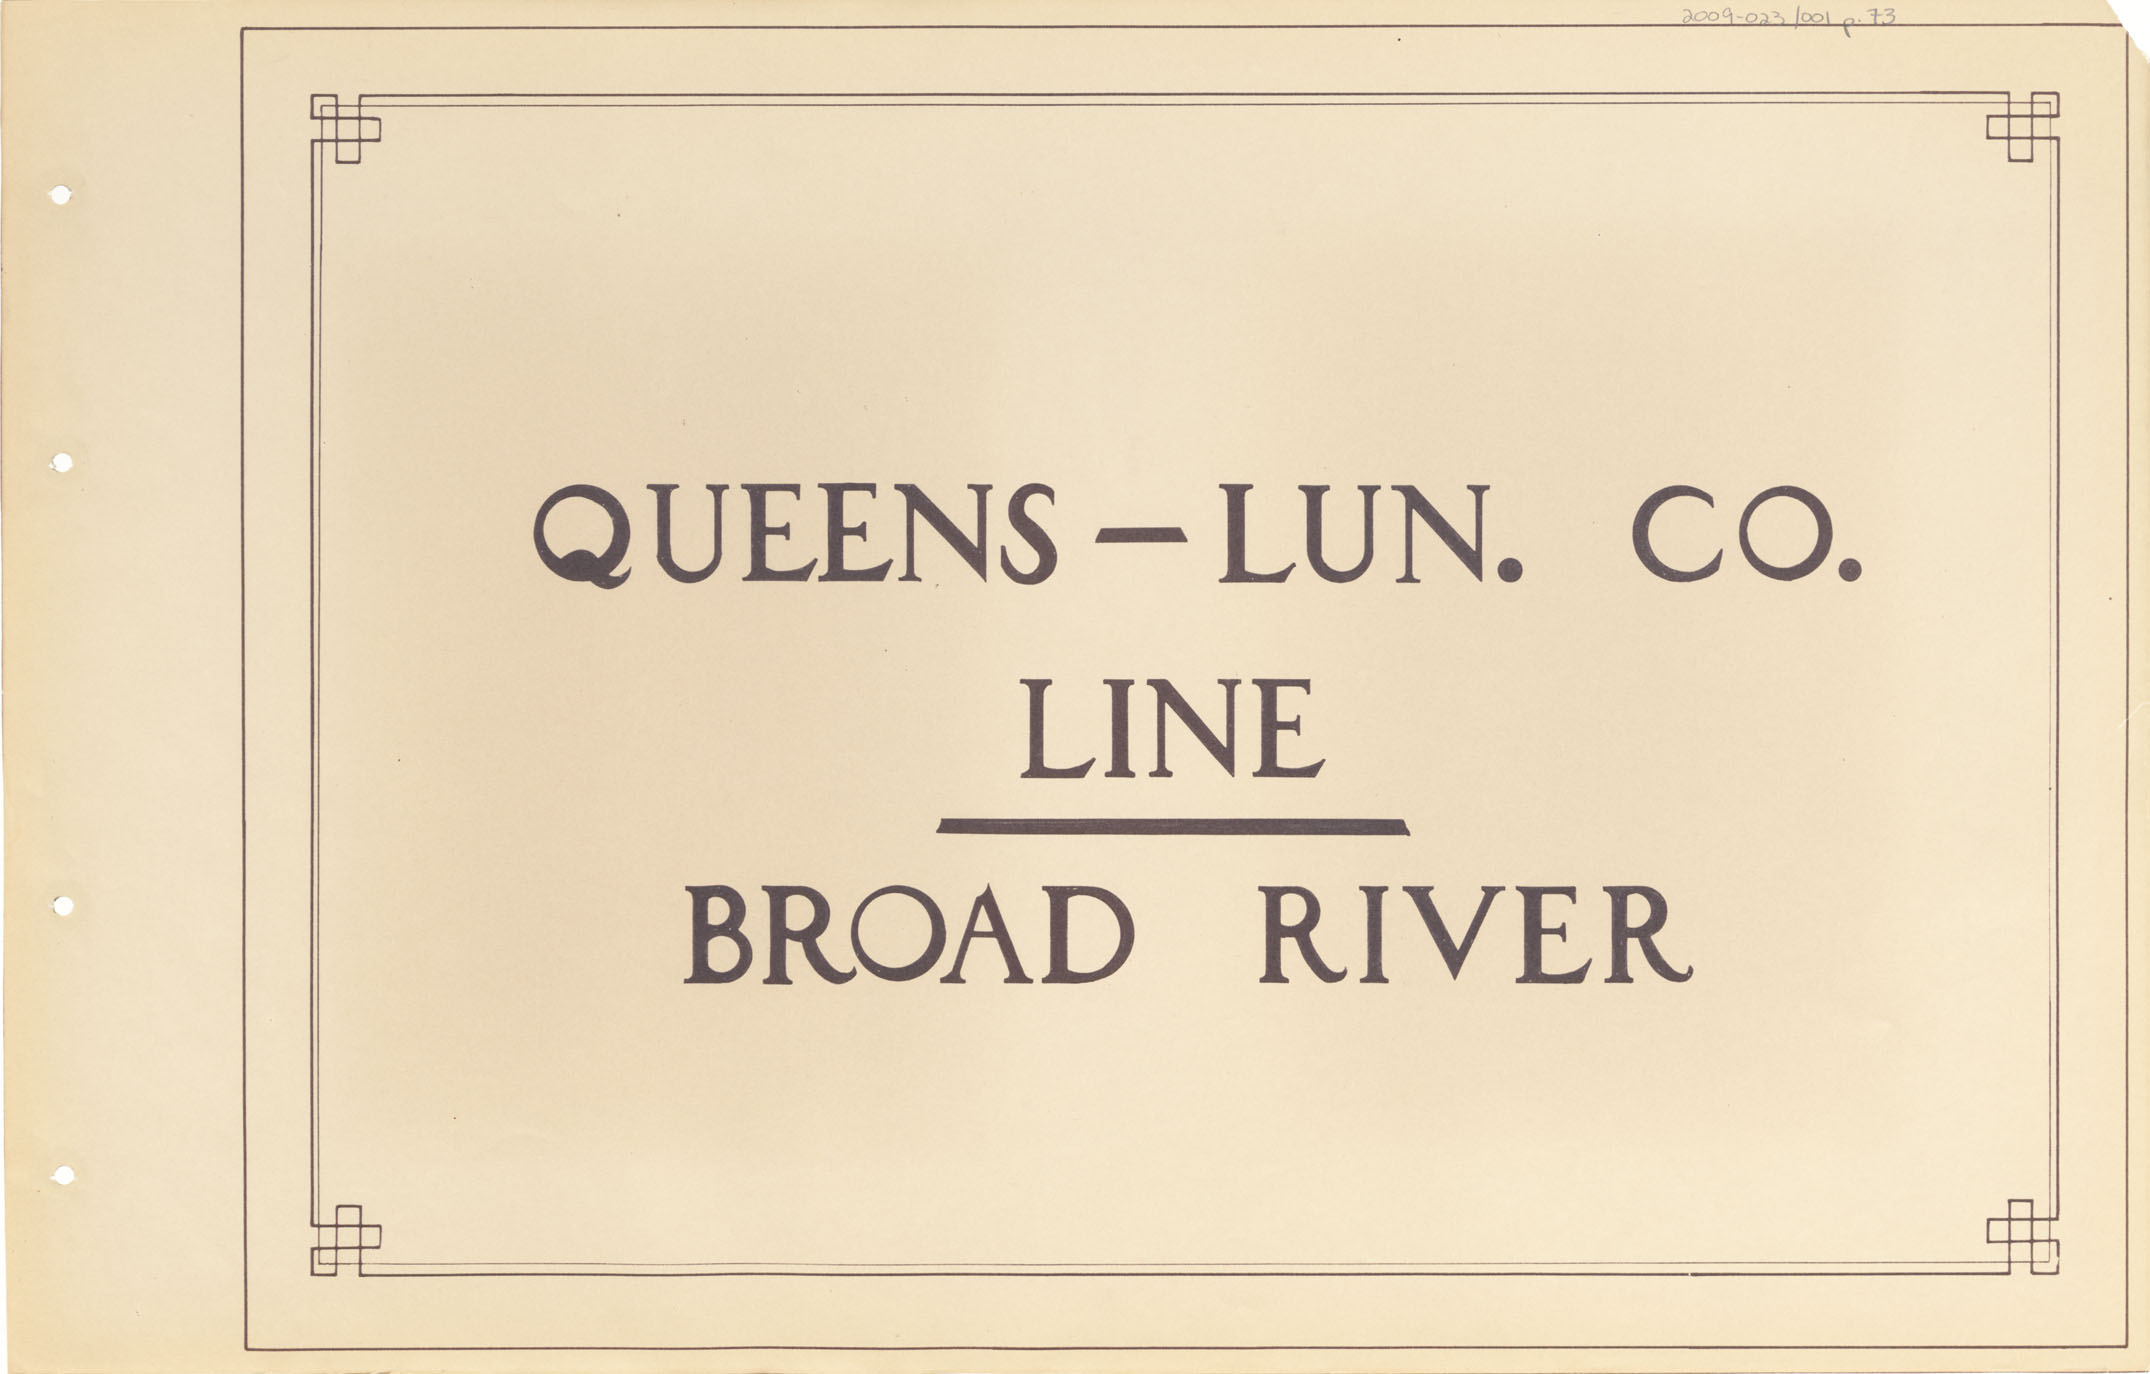 Queens - Lunenburg County Line - Broad River